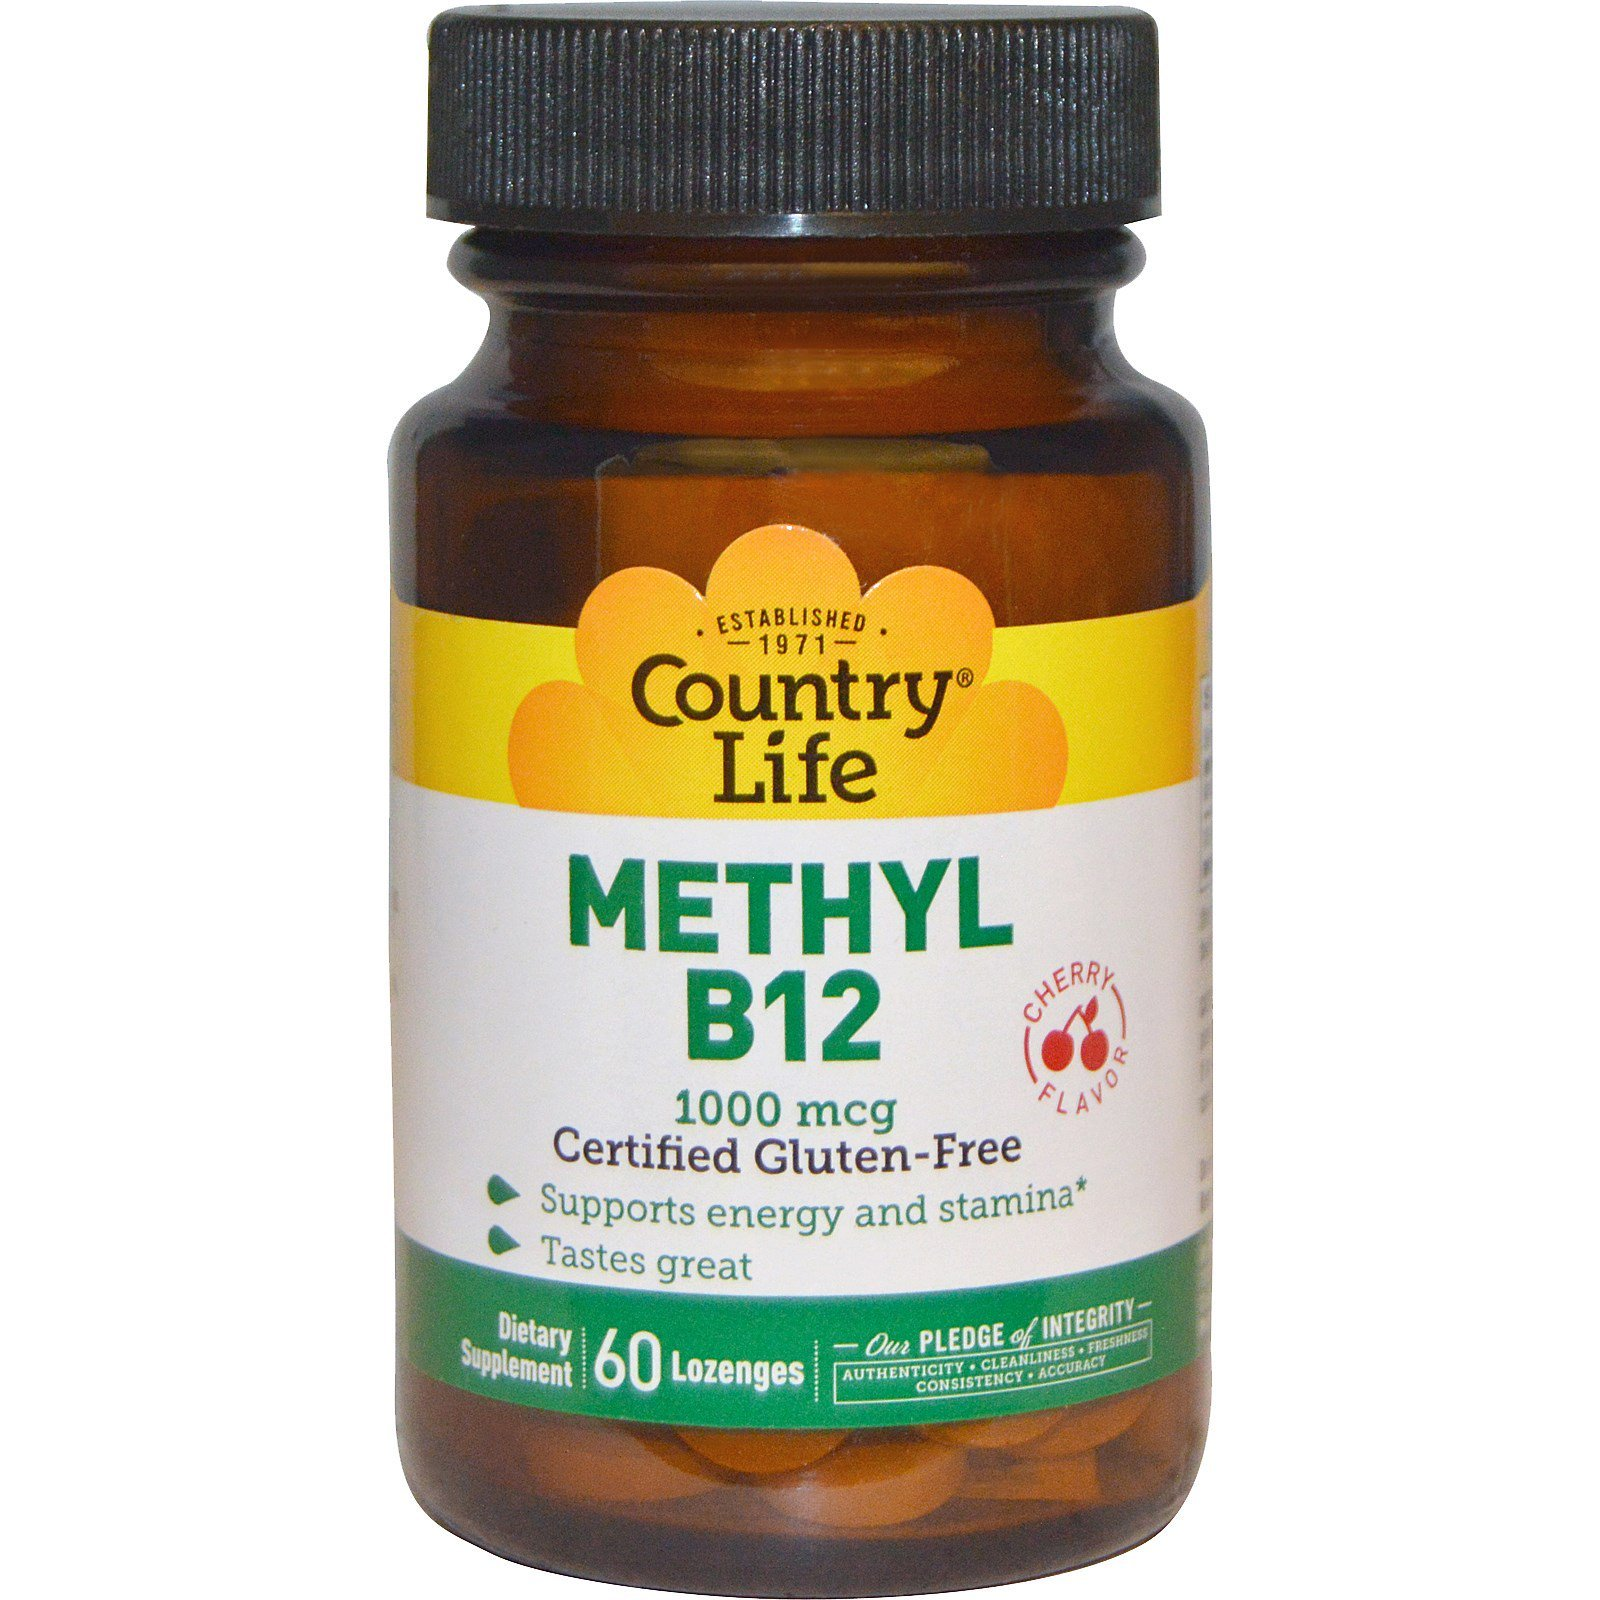 Country Life, Methyl B12, Cherry Flavor, 1000 mcg, 60 Lozenges